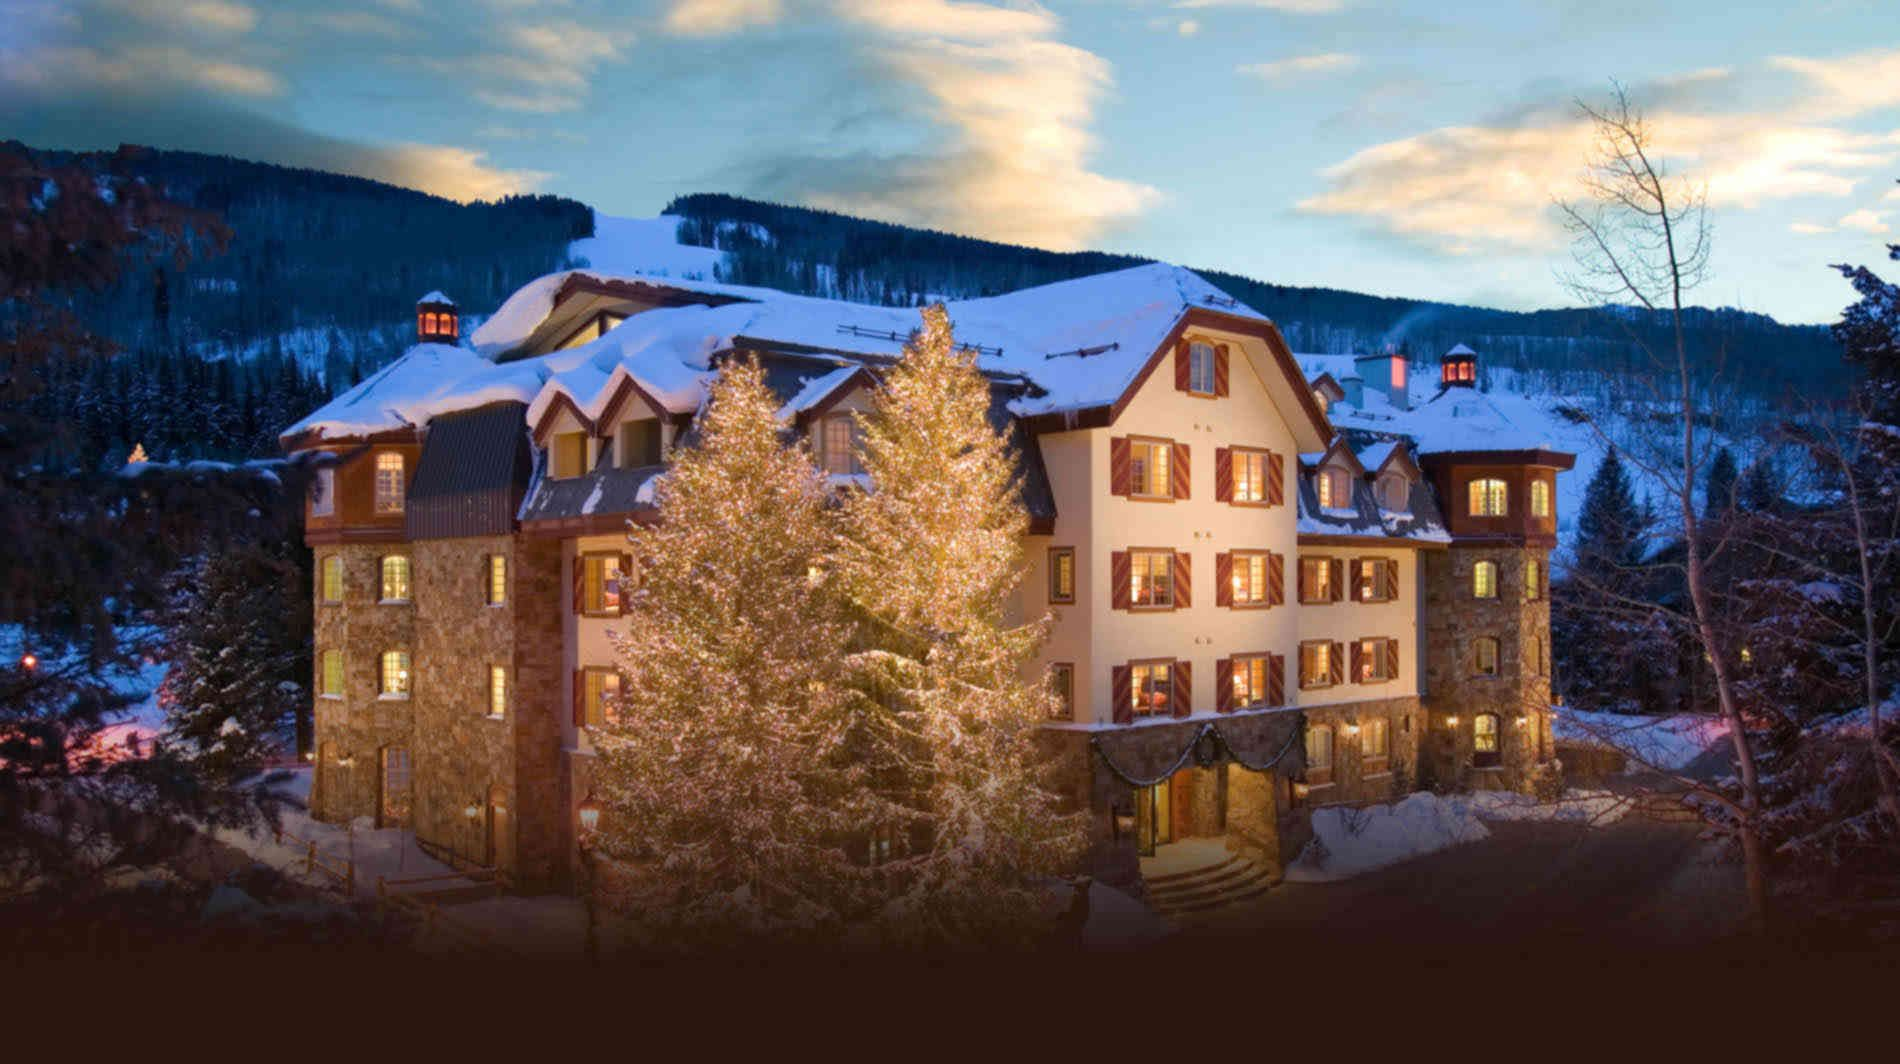 Tivoli Lodge A Vail Hotel Located In The Heart Of Village Our Ski Is Ideal For Family Vacations To Colorado